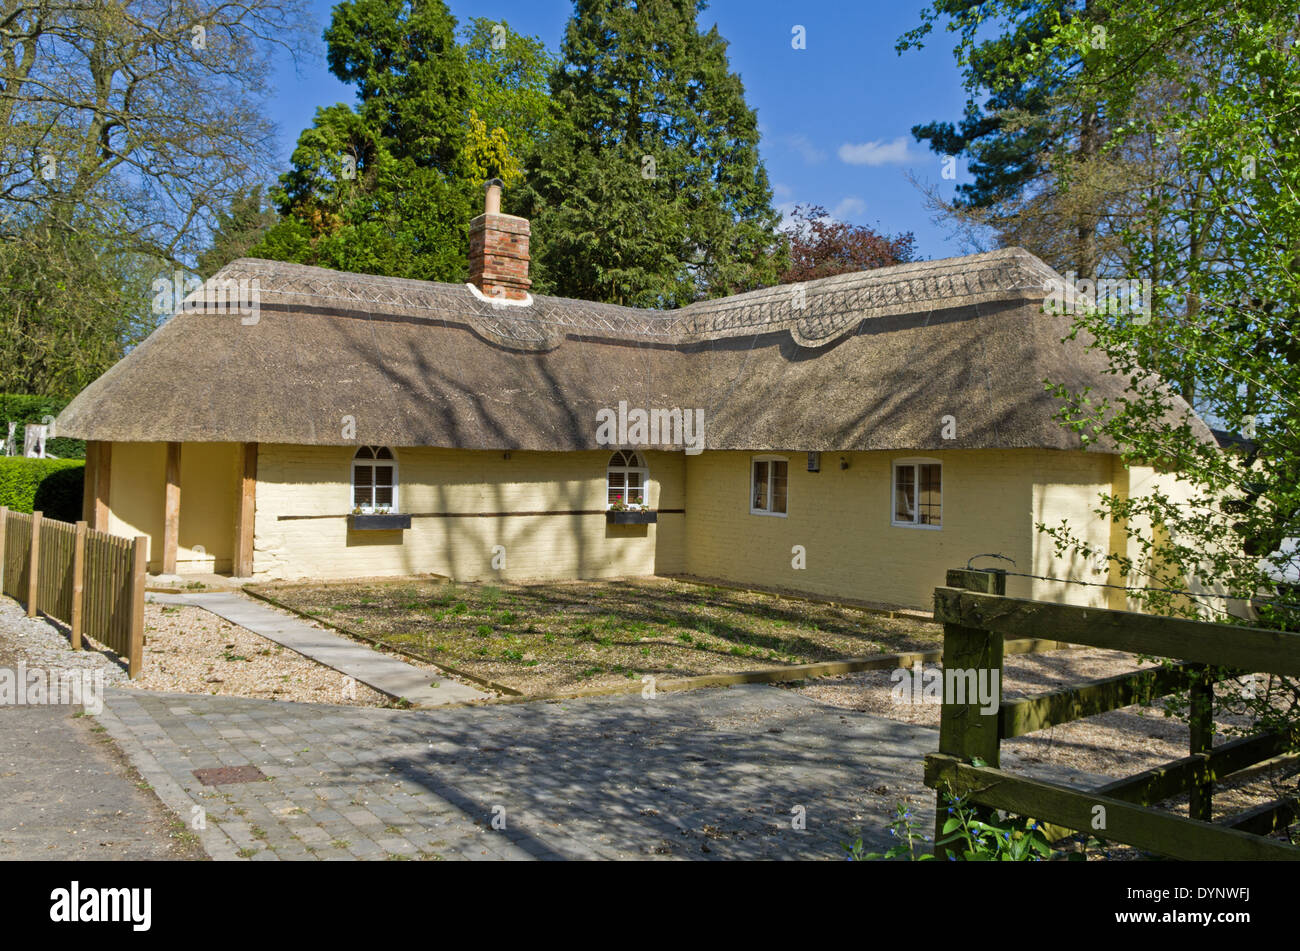 Newly renovated thatched cottage in the village of Cosgrove, Northamptonshire, UK - Stock Image